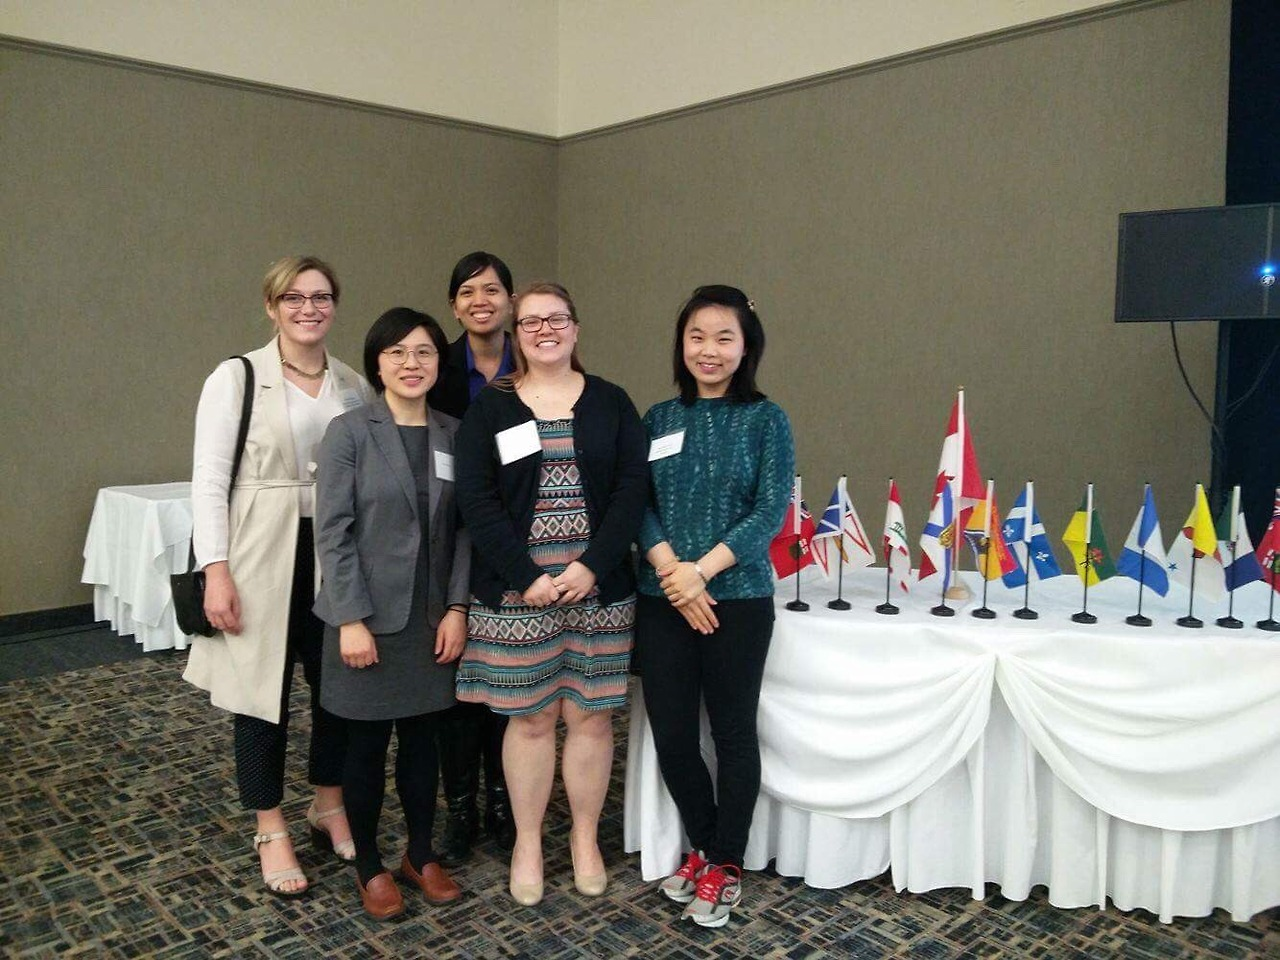 Gerontological Nursing Association Ontario